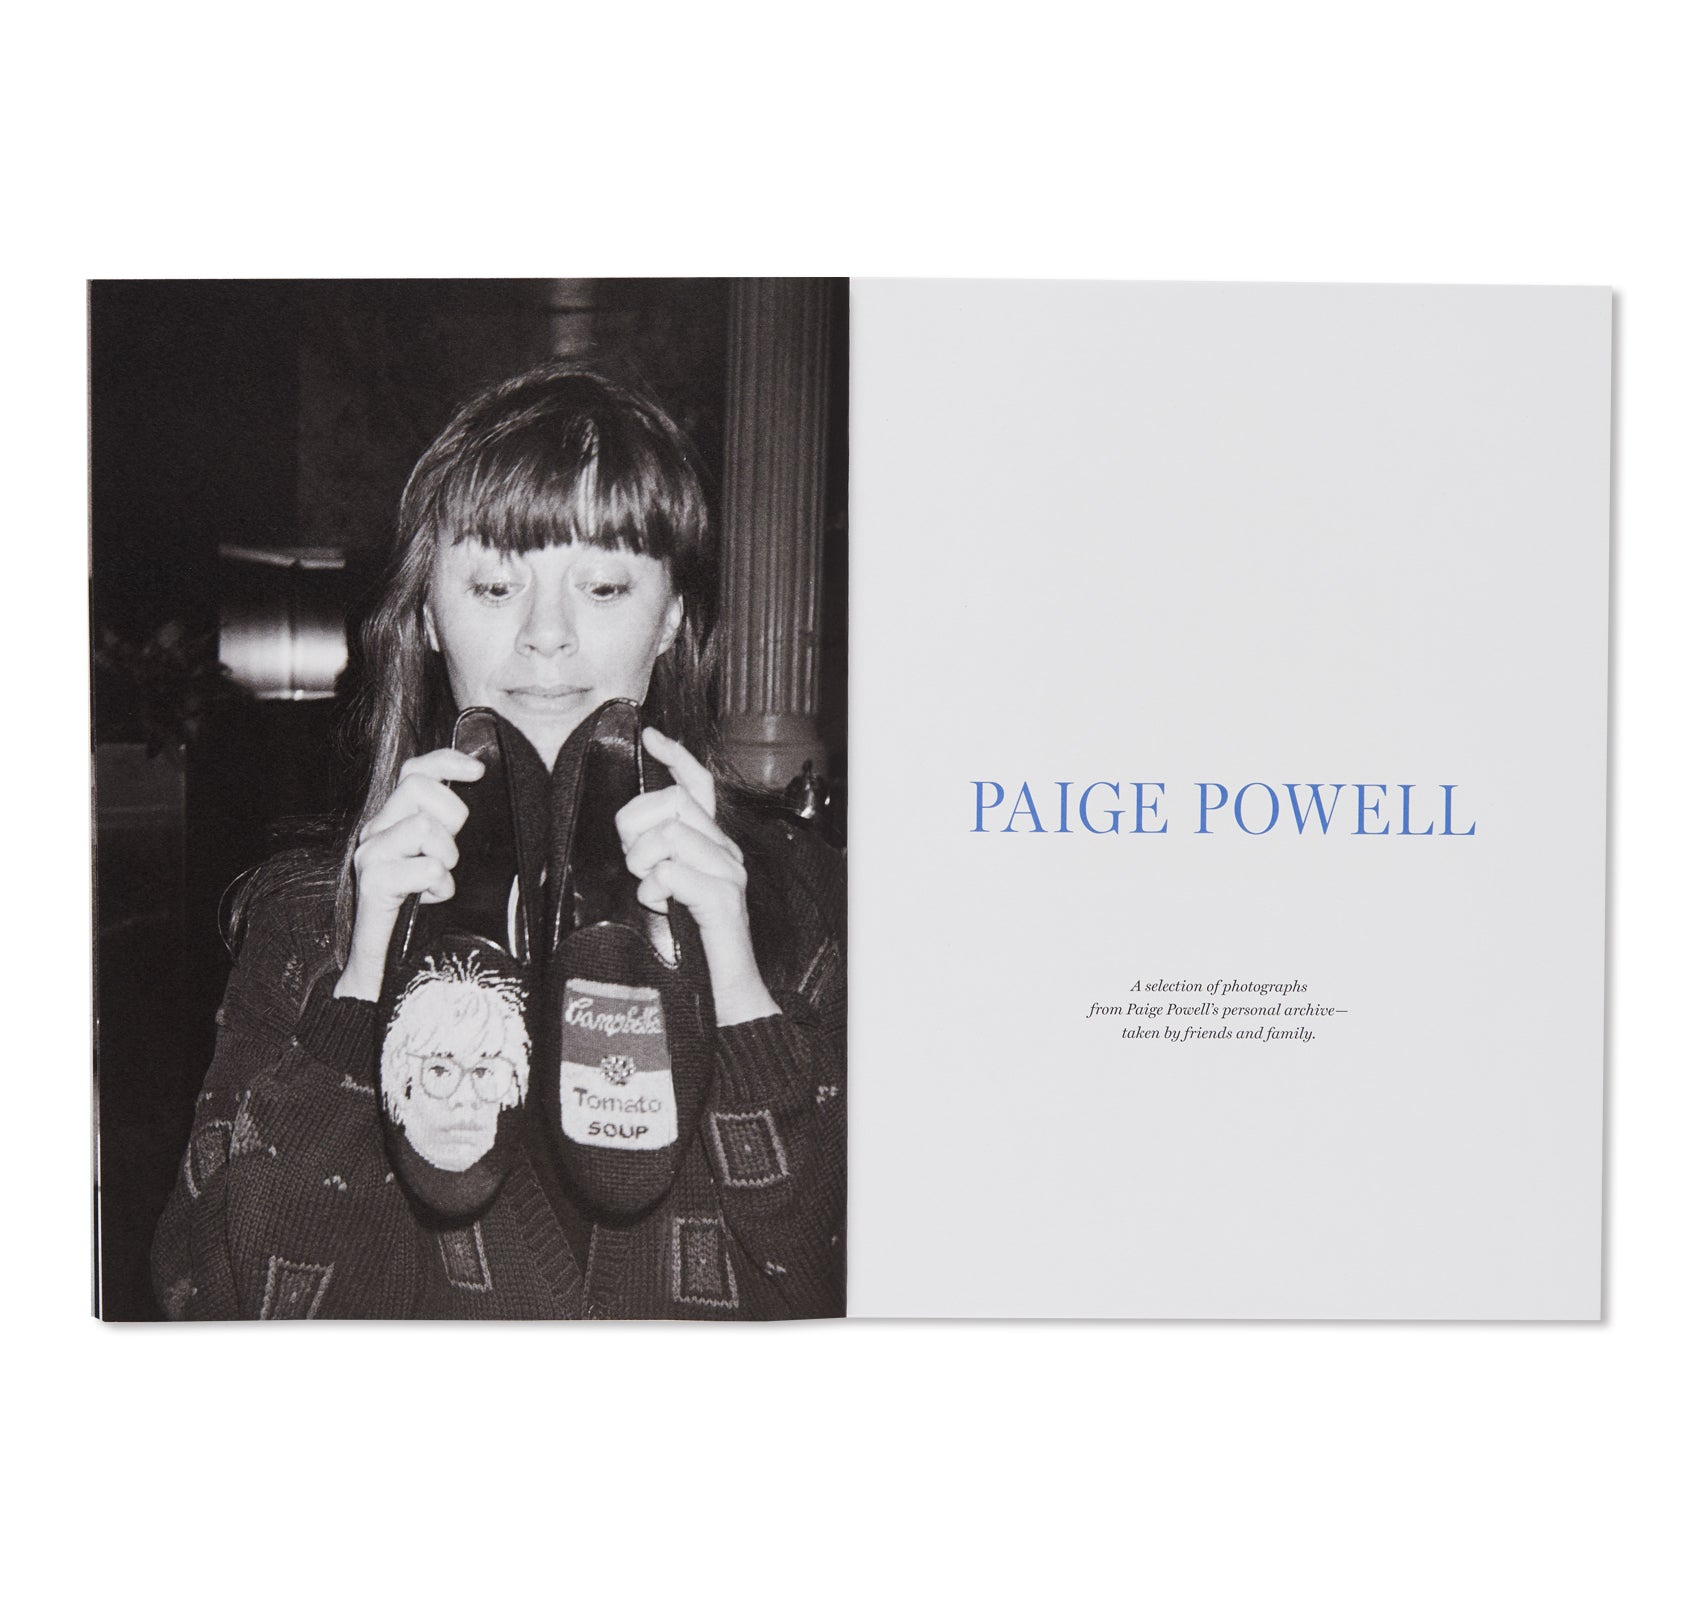 PAIGE POWELL by Paige Powell